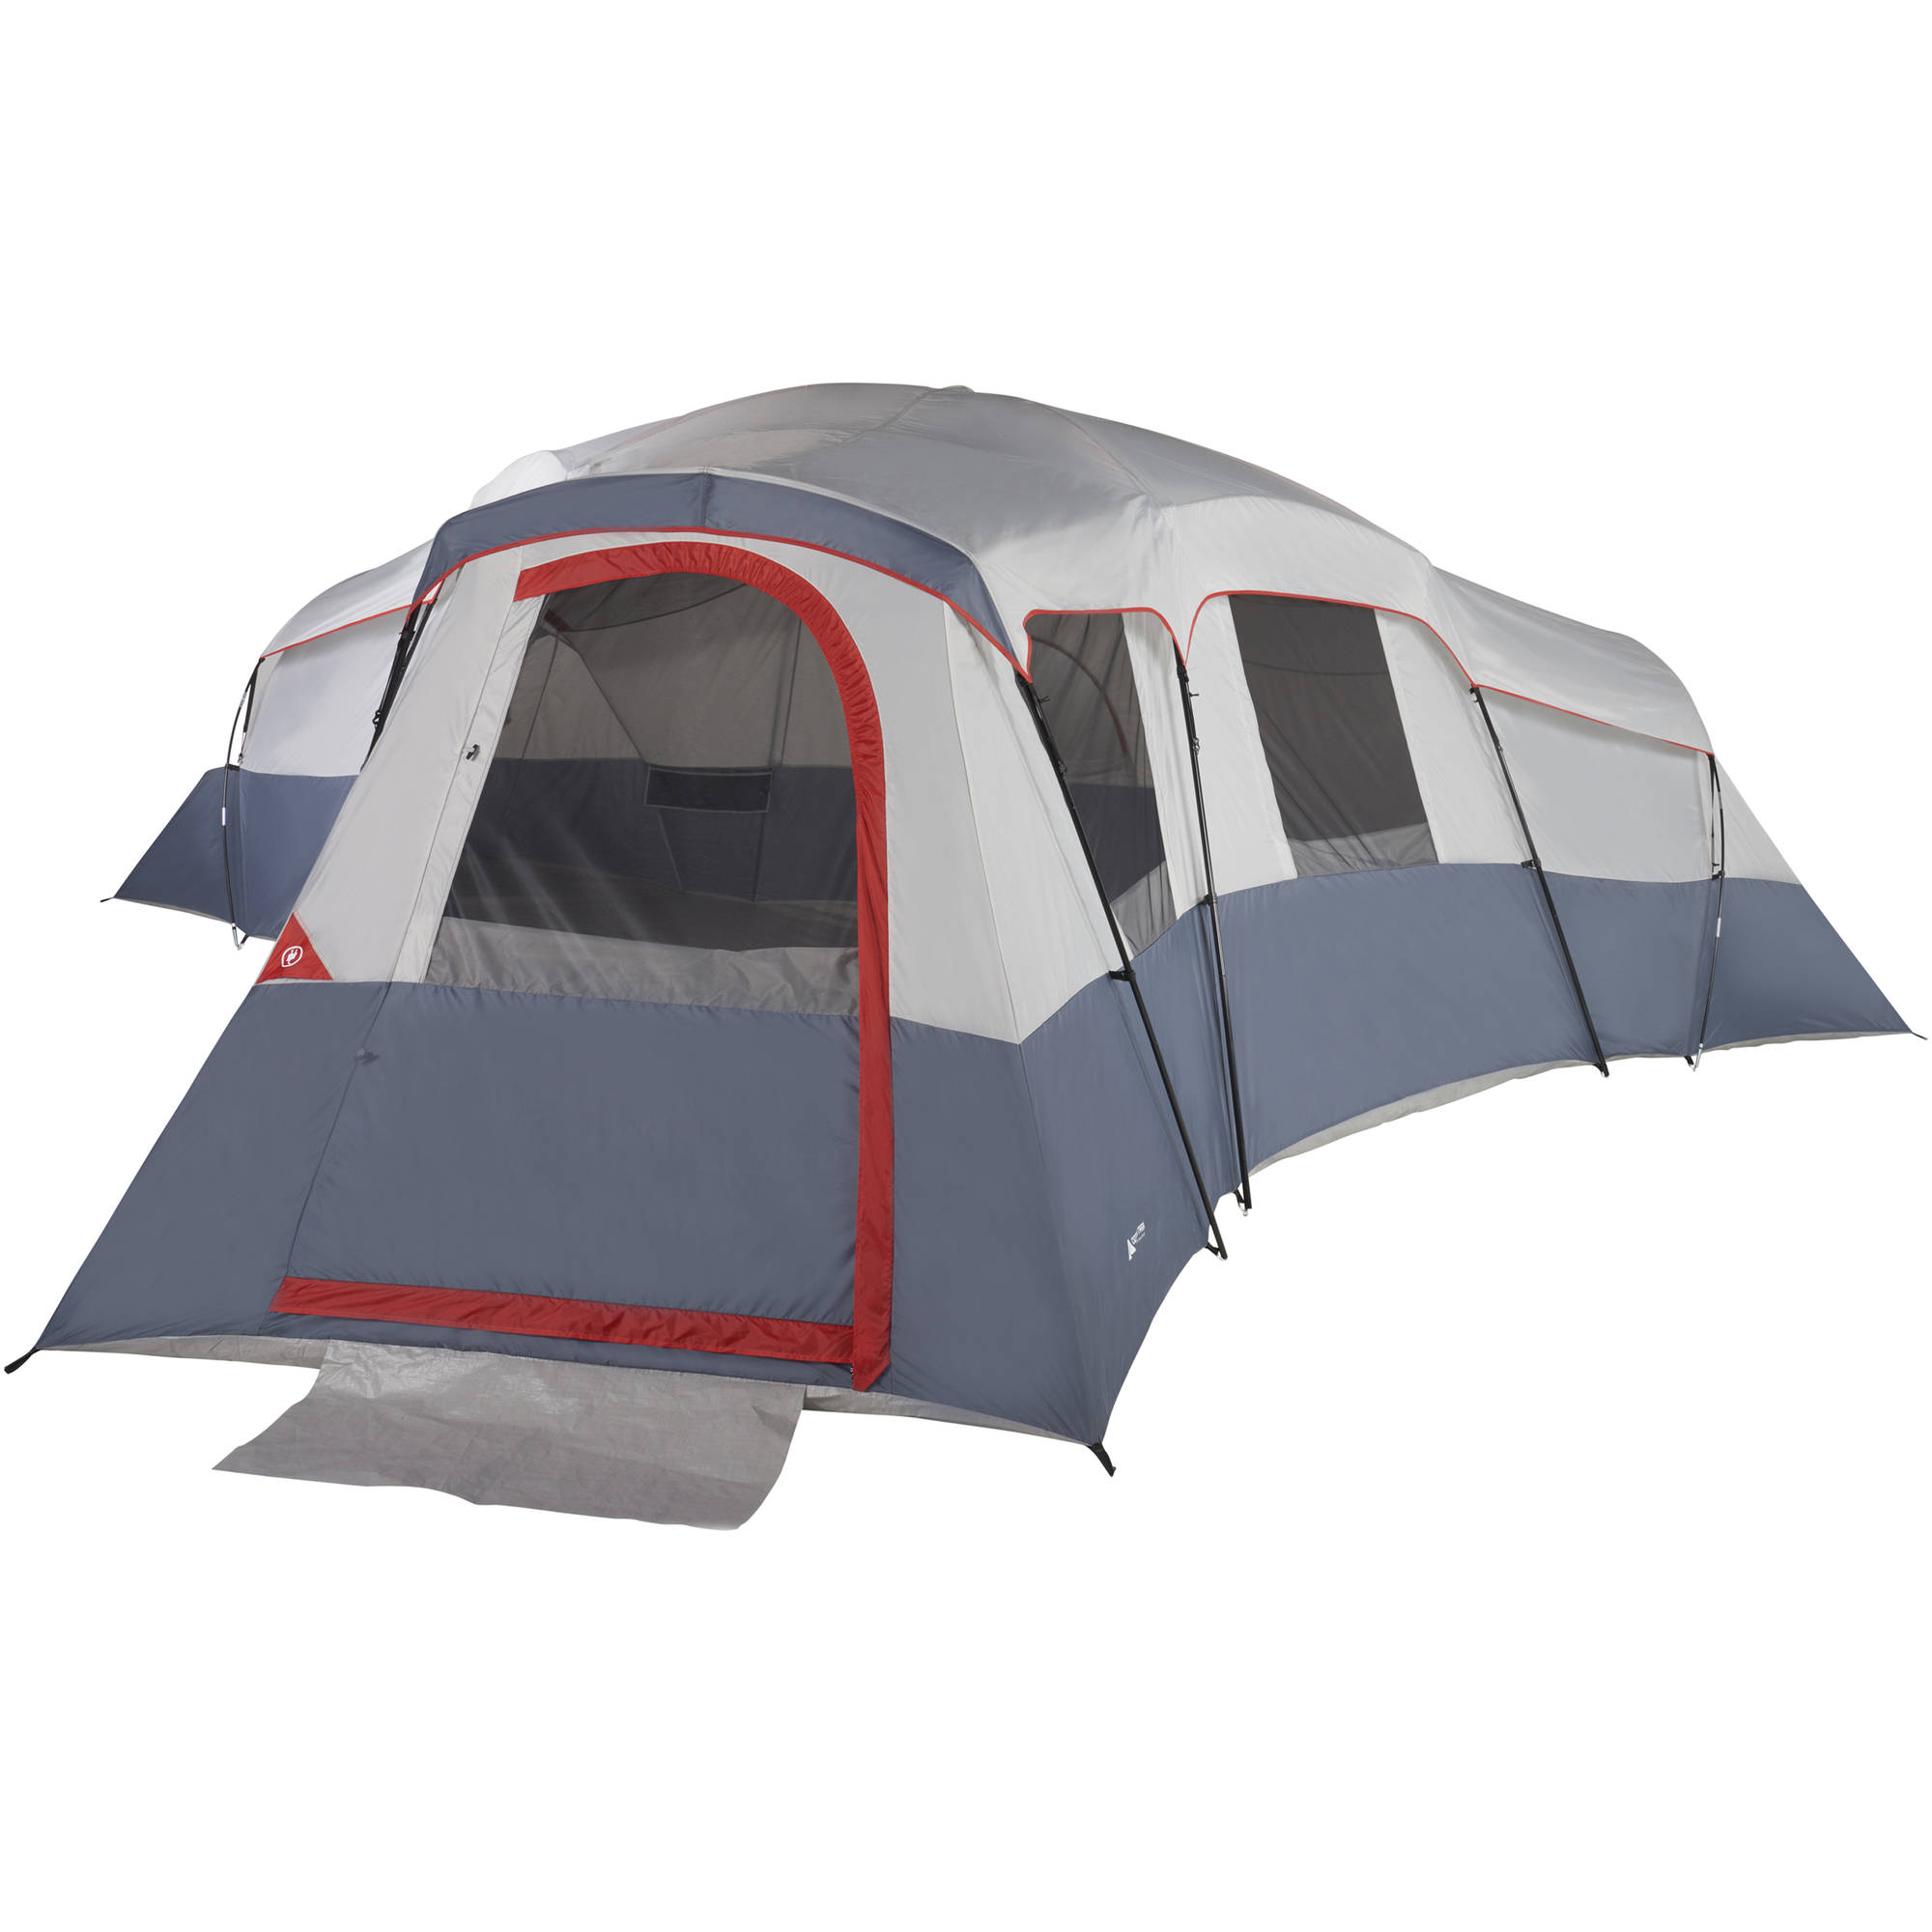 Ozark Trail 20 Person Cabin Tent  sc 1 st  Walmart & Ozark Trail 20 Person Cabin Tent - Walmart.com